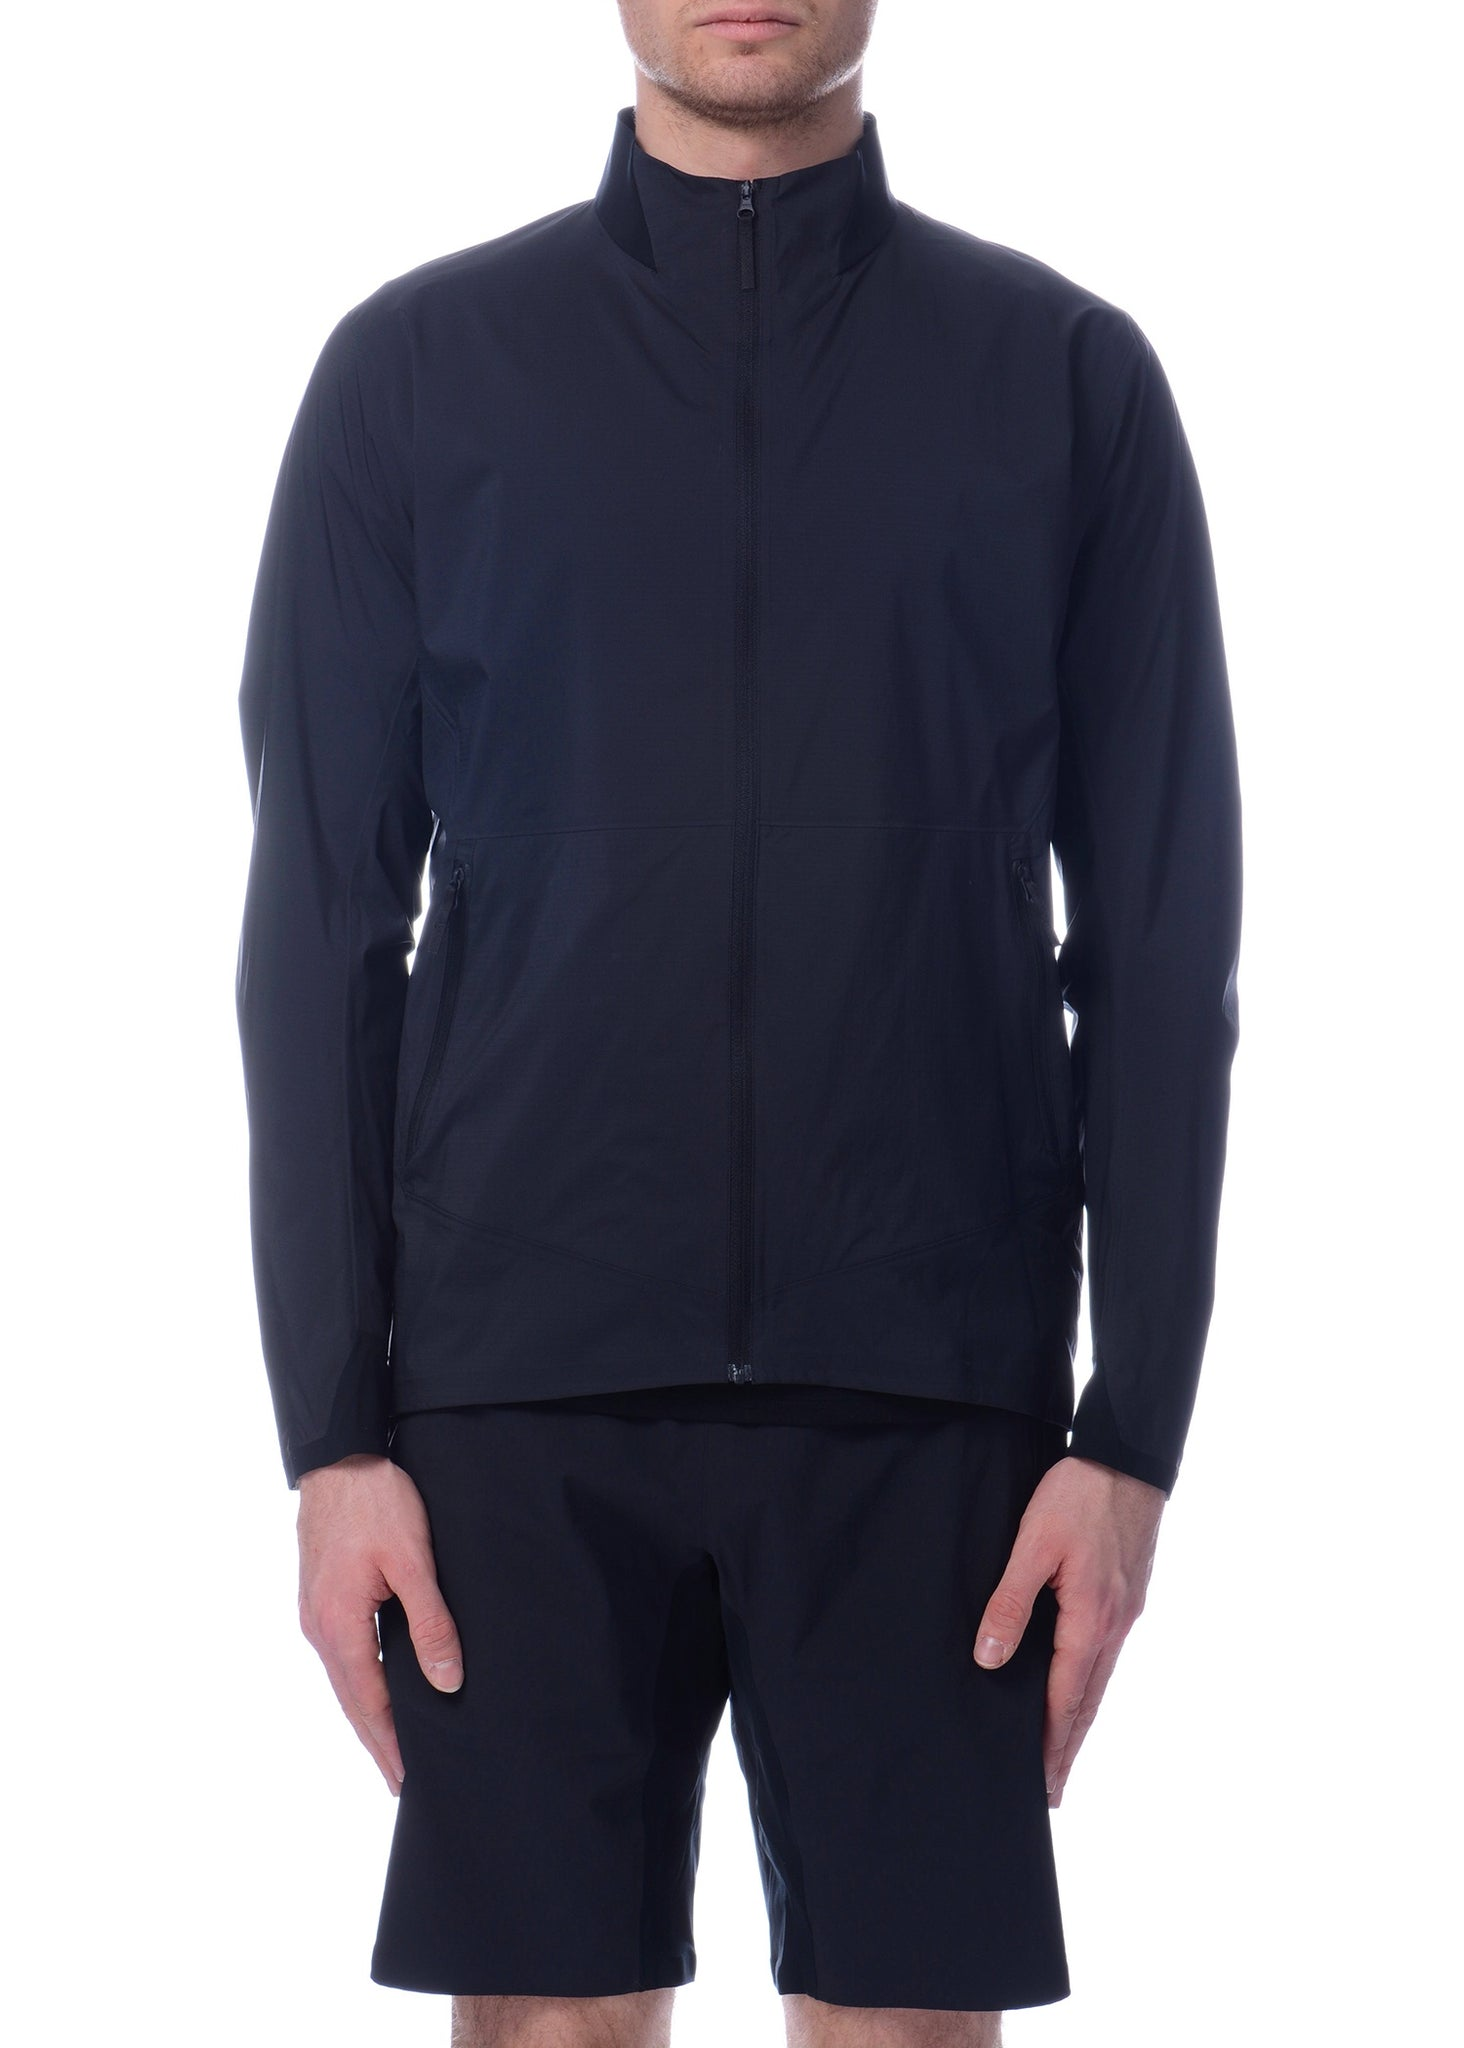 Coquille DEMLO Noire|Black DEMLO Shell Jacket